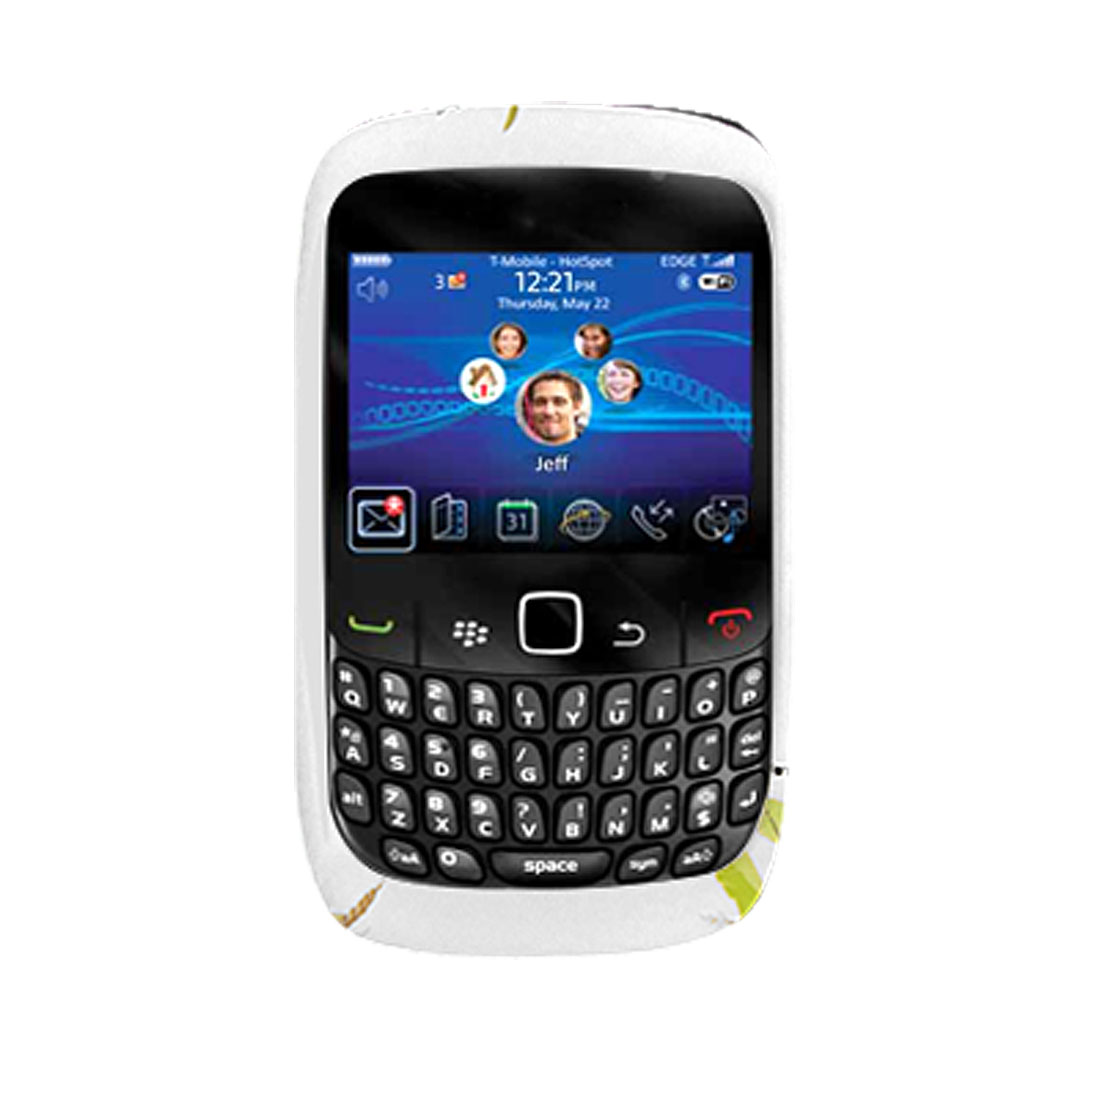 Floral Soft Plastic Cover White Shell Case for Blackberry 8520